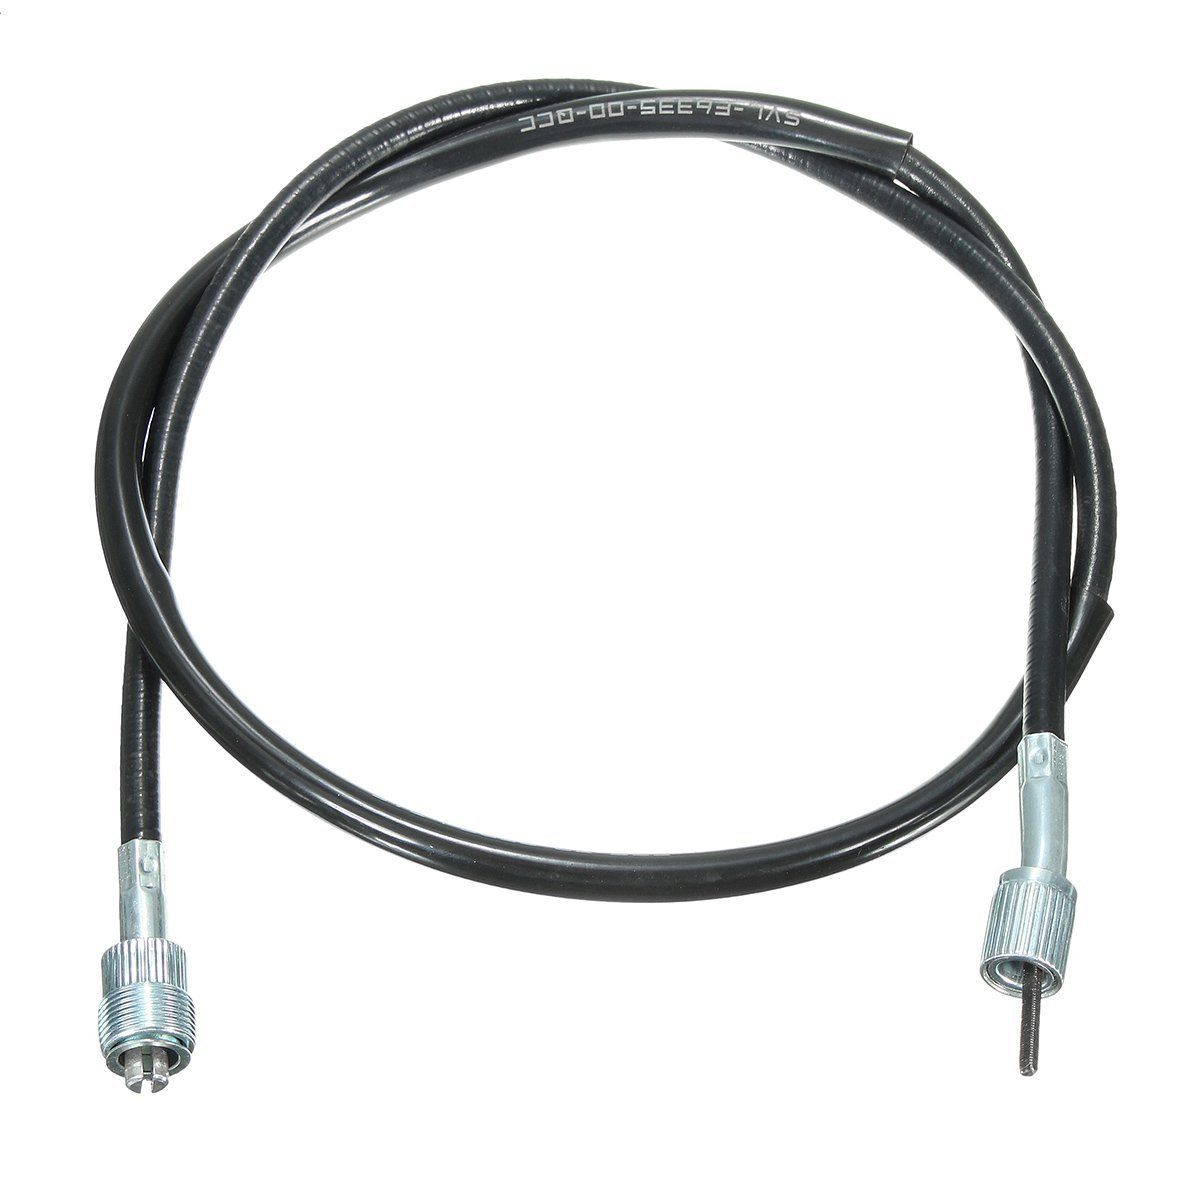 Buy New Speedometer Speedometer Cable for Suzuki RMX250